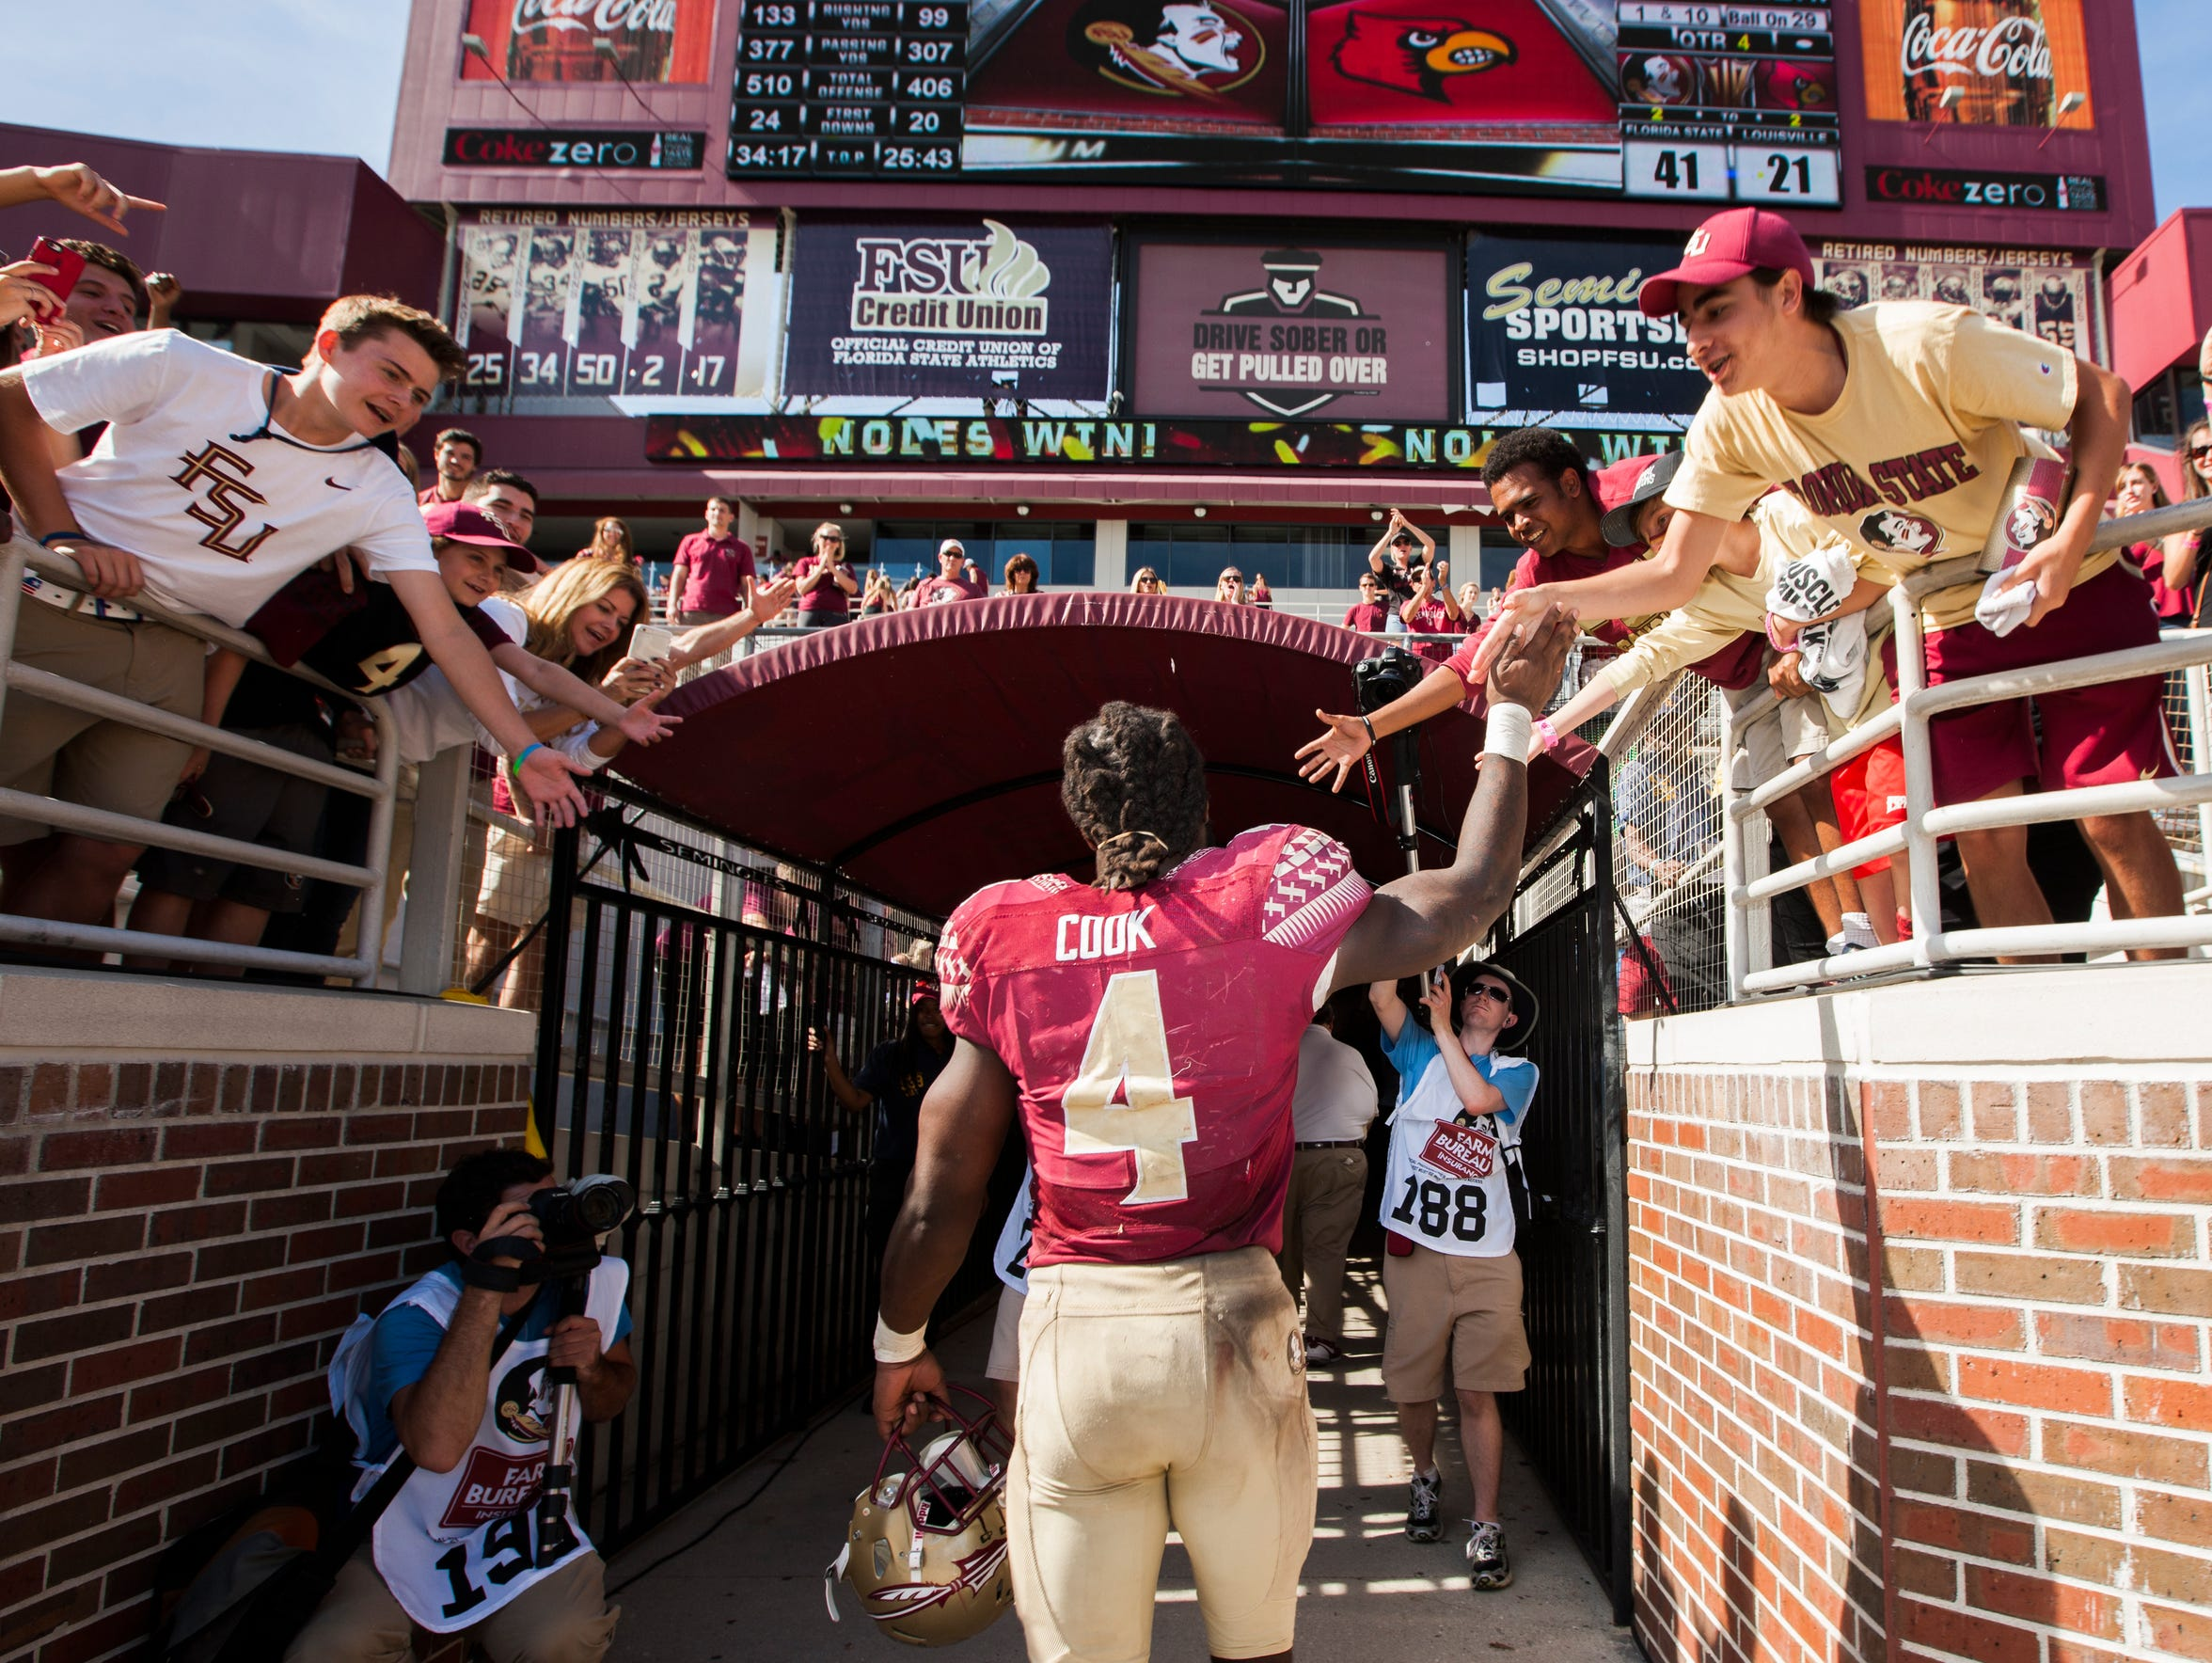 If FSU makes a run to the national title, Cook will